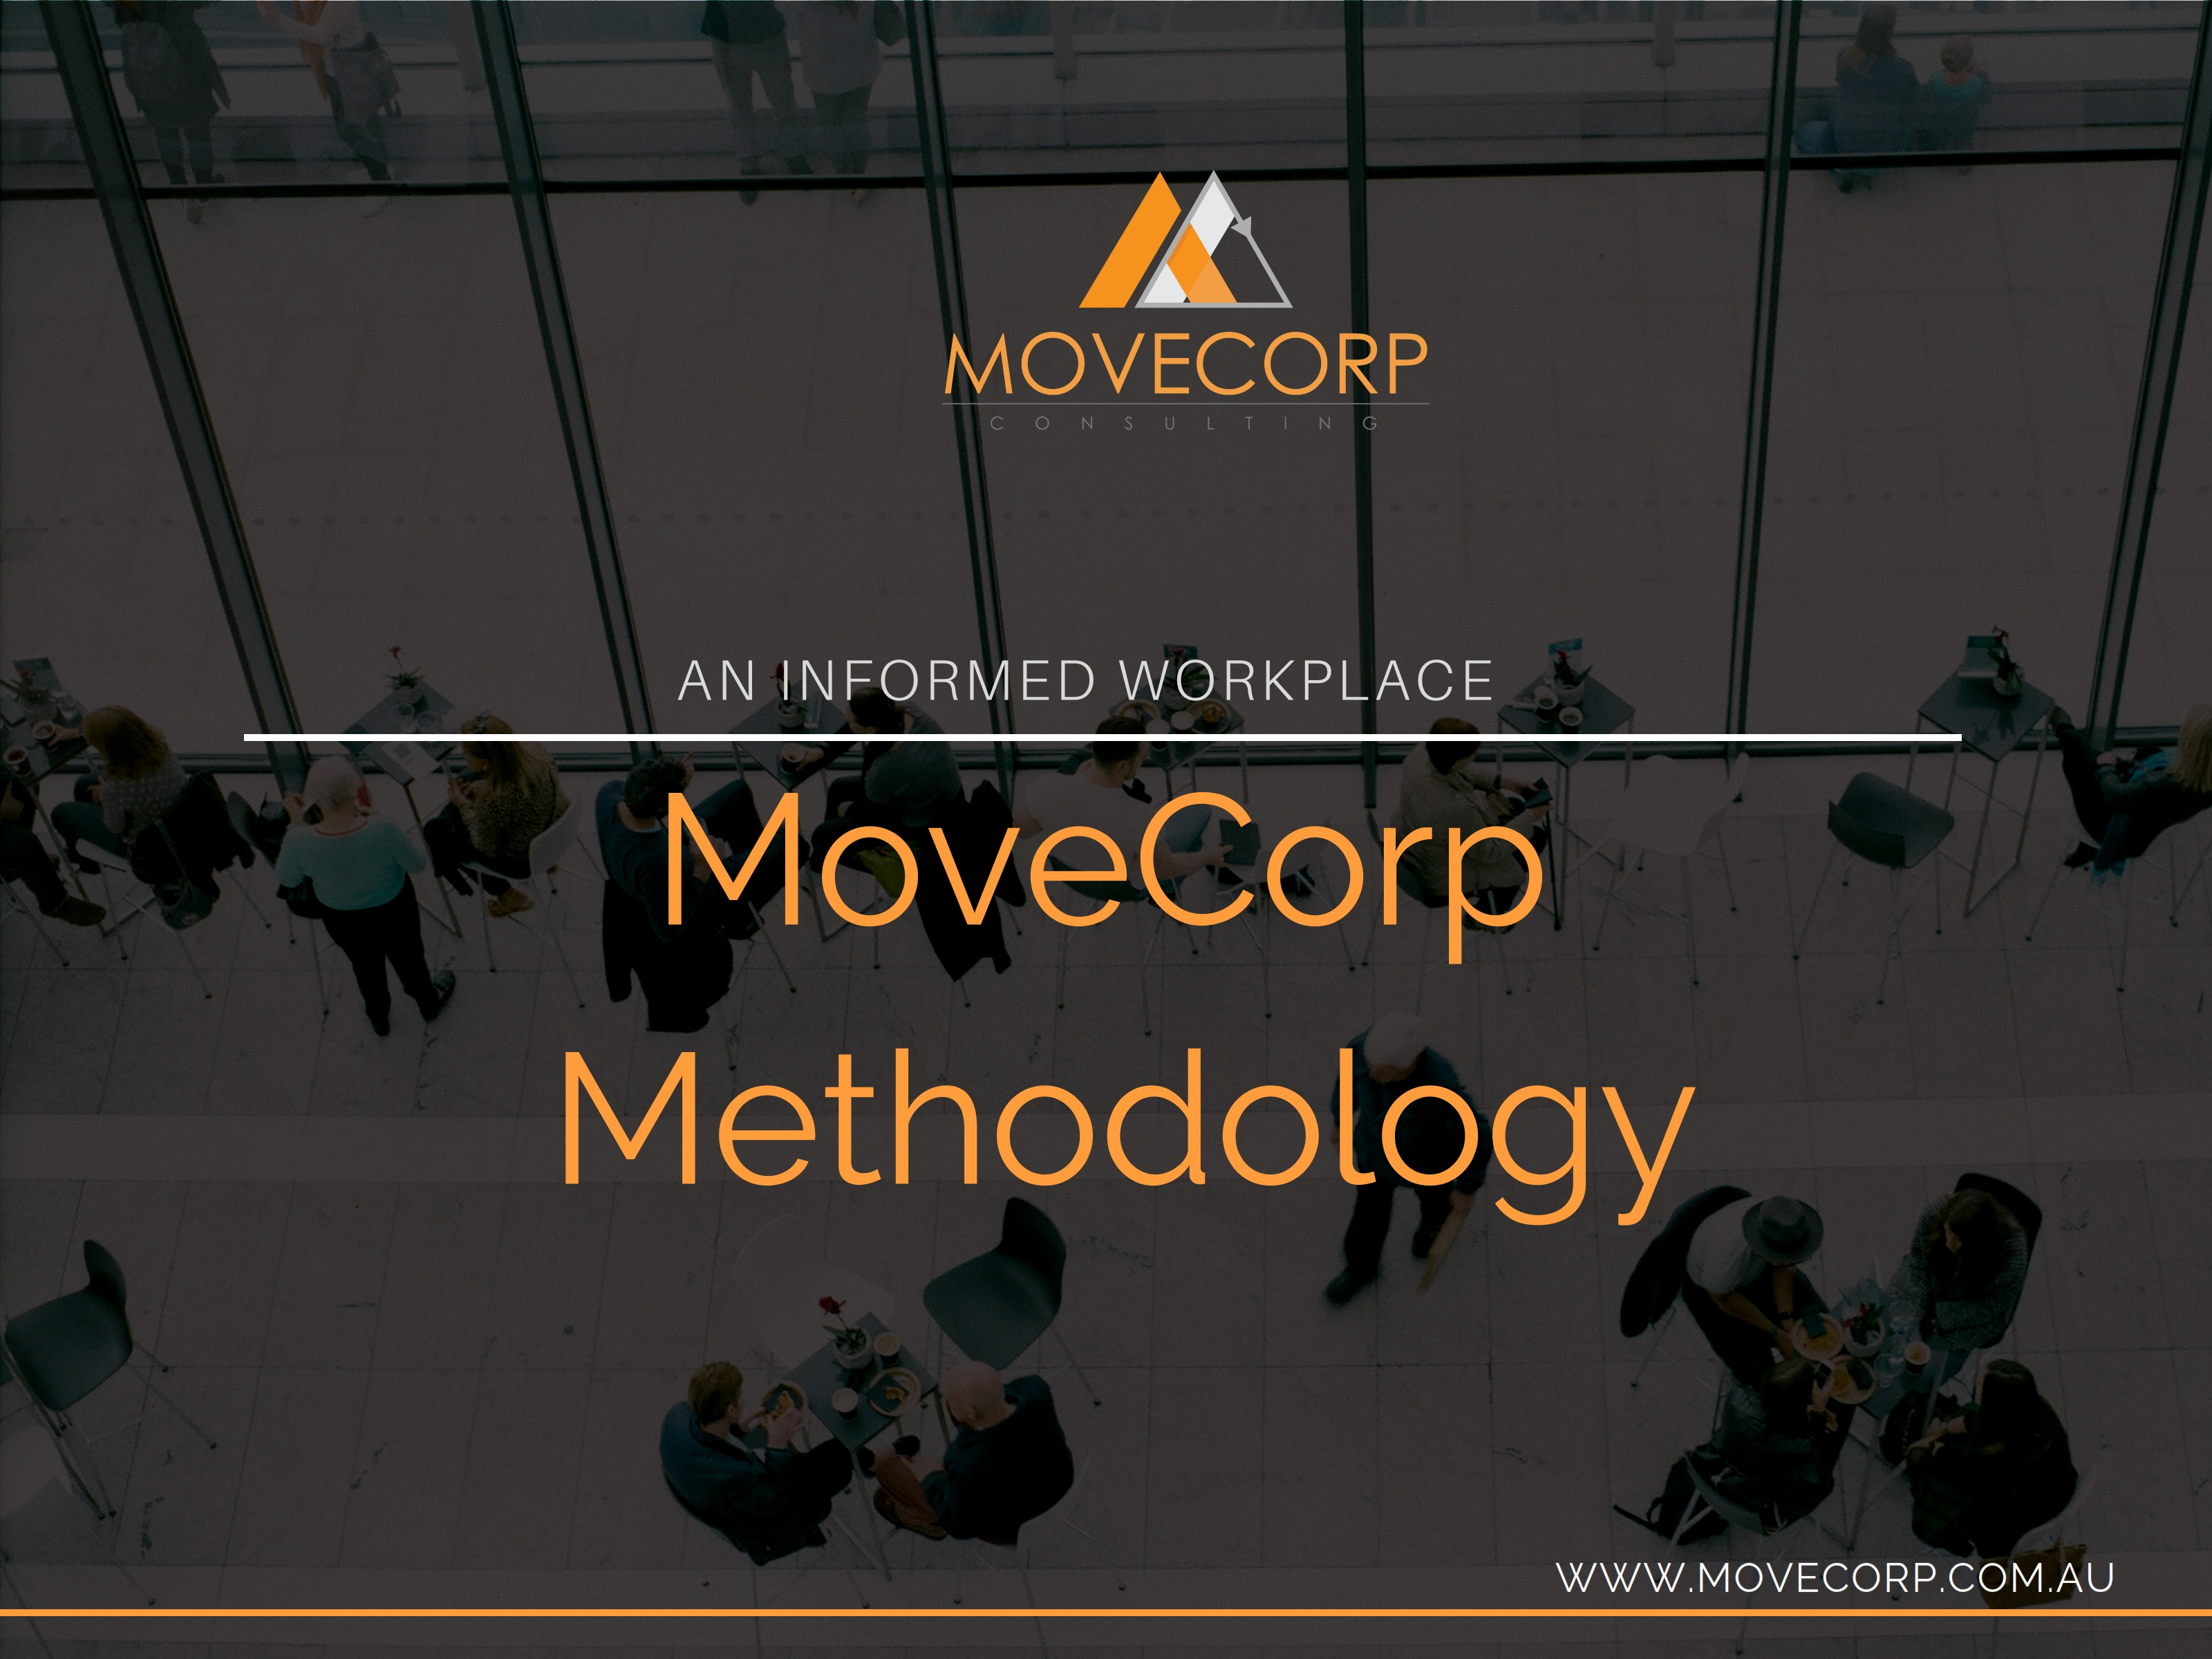 MoveCorp Relocation & Change Methodology (1)_001